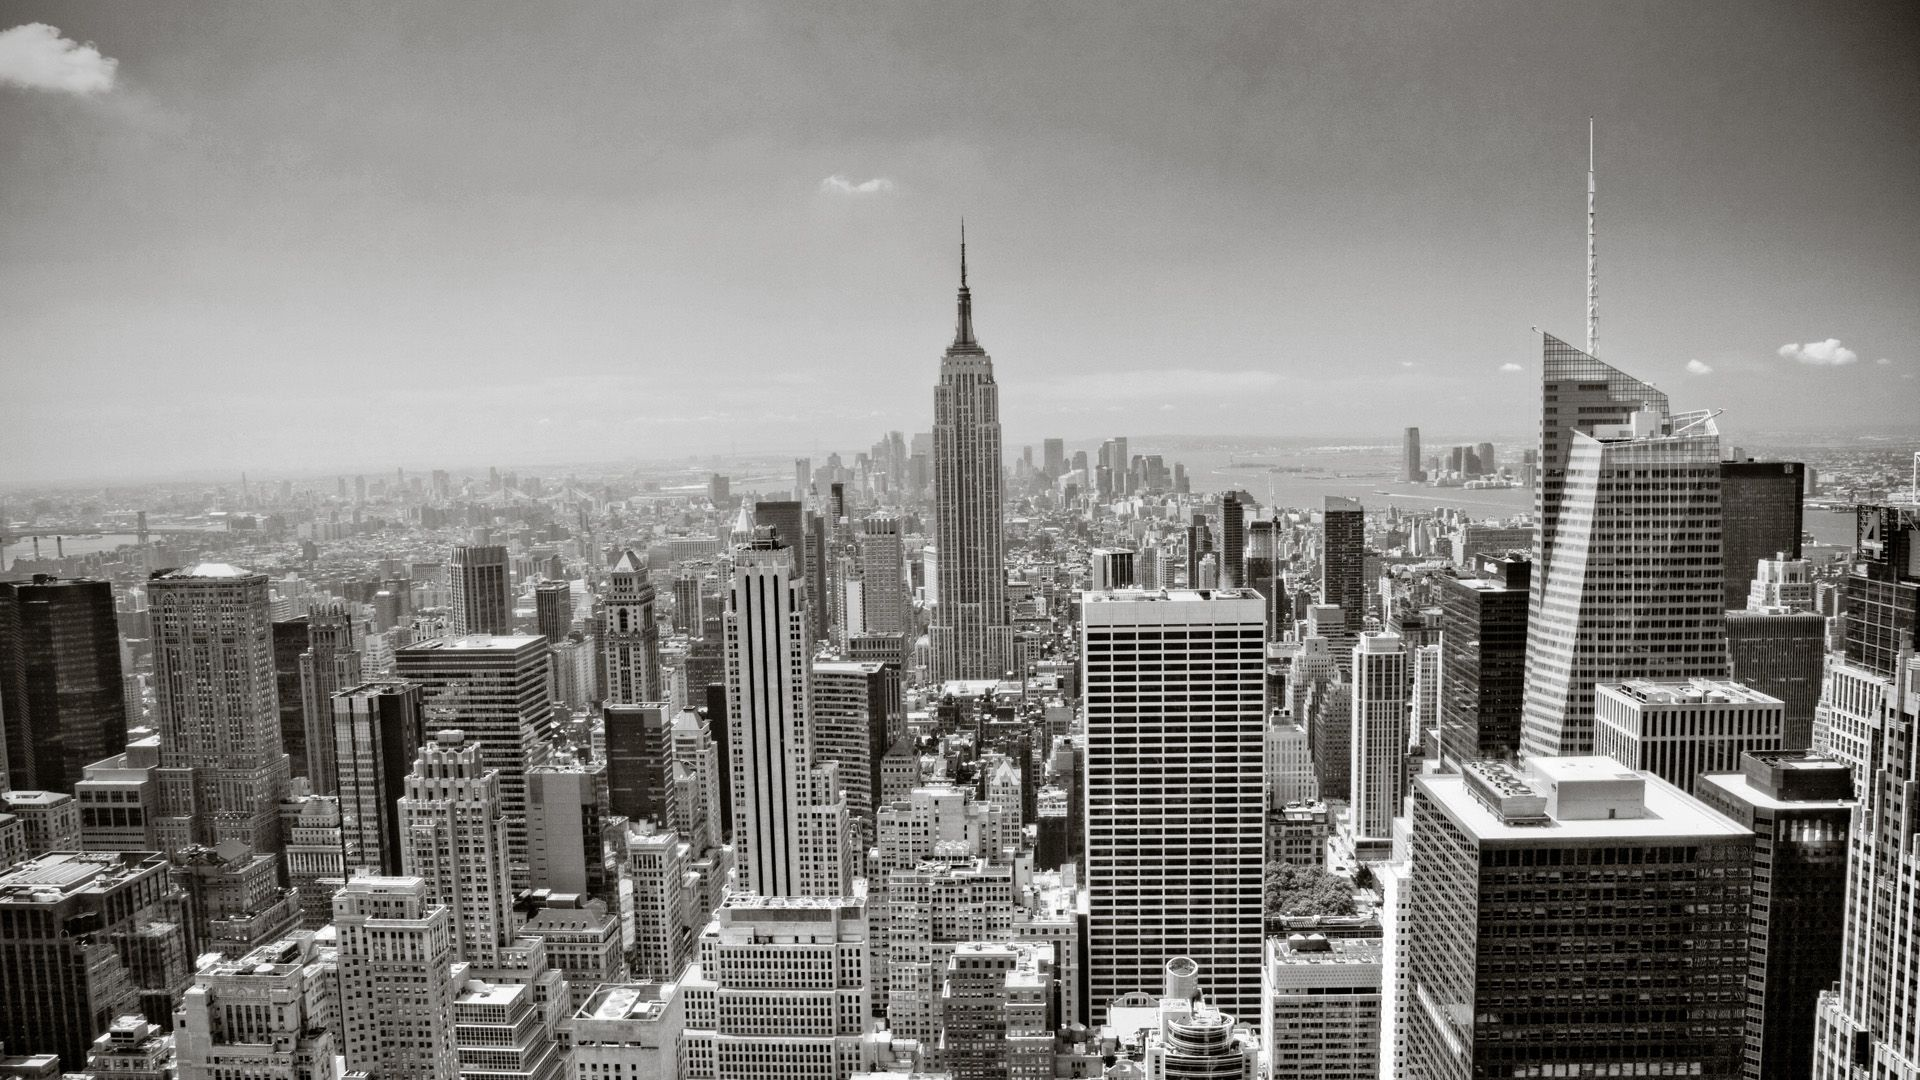 chrysler building black and white wallpaper. black and white tumblr backgrounds hd images 3 hd wallpapers blackwhite photos pinterest wallpaper chrysler building